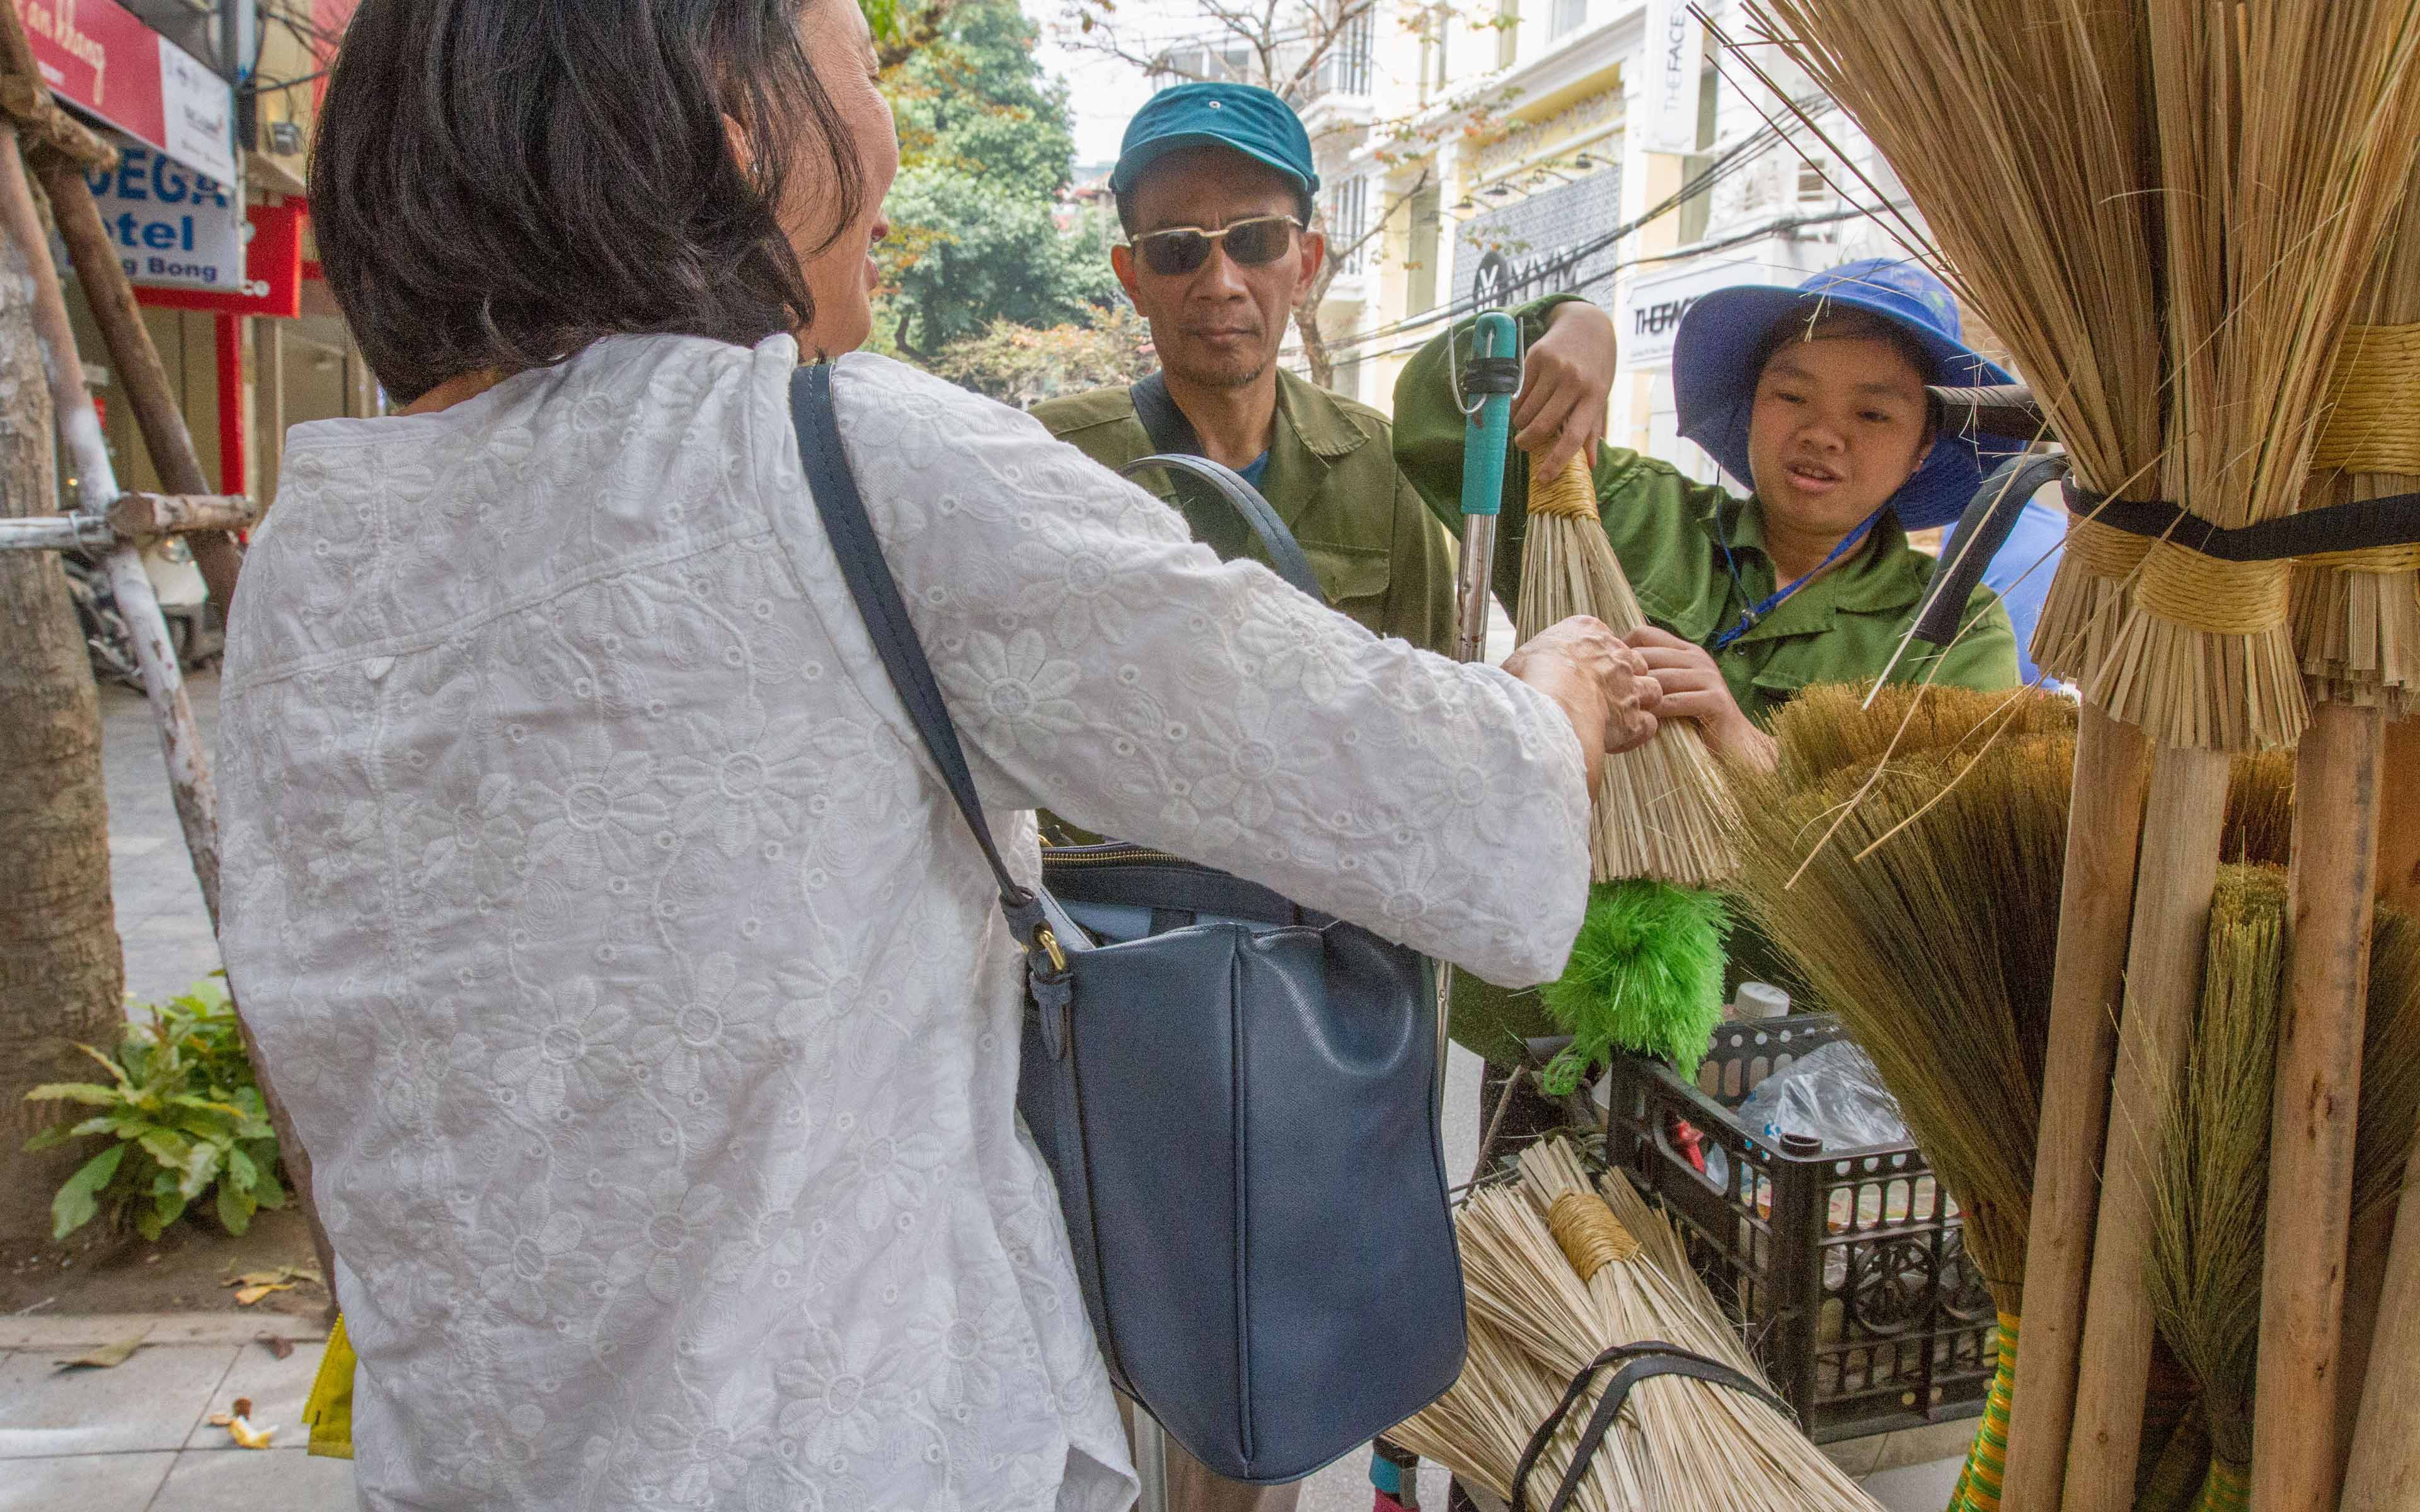 Phạm Thị Hậu and her uncle sell brooms to a customer on the streets of Hanoi. It was his idea for her to sell brooms and share the profit with the Blind Association in Hanoi's Hoan Kiem District.